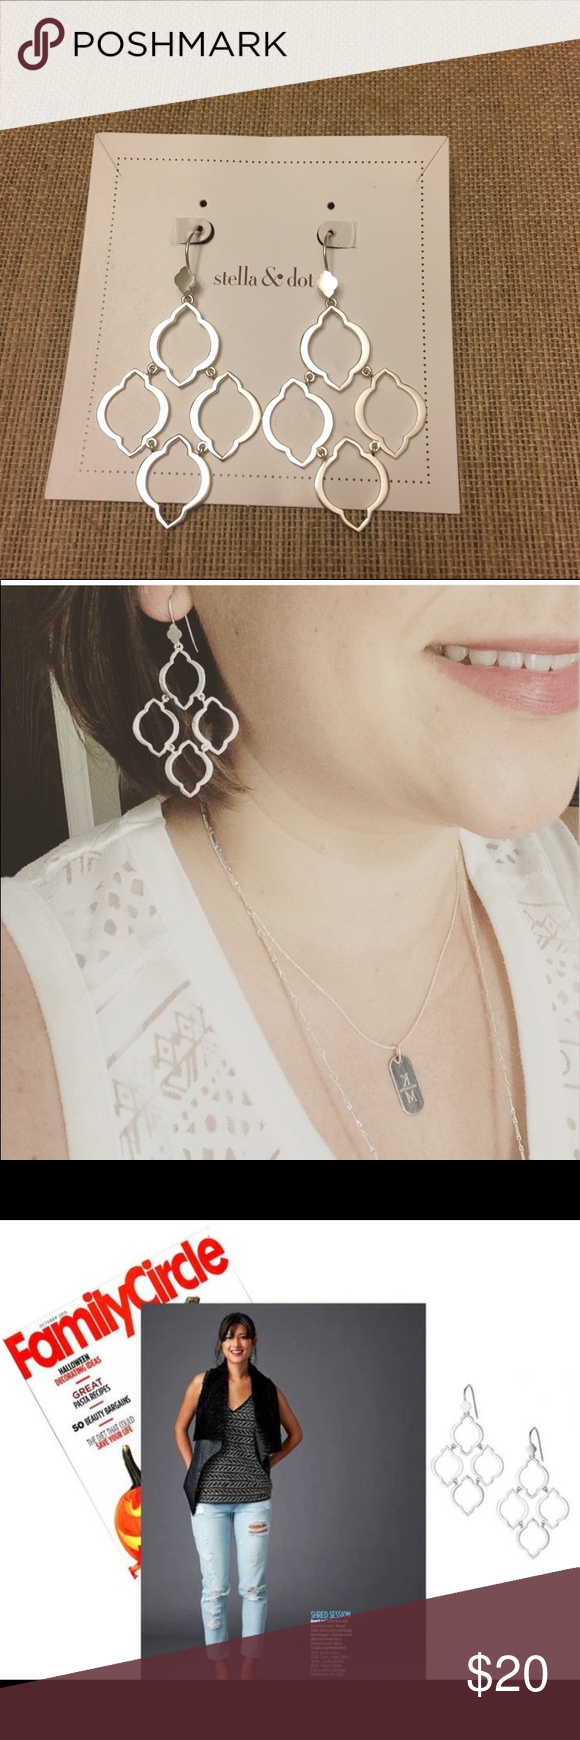 """Stella & Dot Arabesque Chandelier Earrings Beautiful hand-brushed arabesque link chandeliers hand-modeled in the Stella & Dot NY design studio.  Silver plating.  Sterling silver earwire.  2 1/2"""" drop length.  Featherweight. IN NEW CONDITION Stella & Dot Jewelry Earrings"""